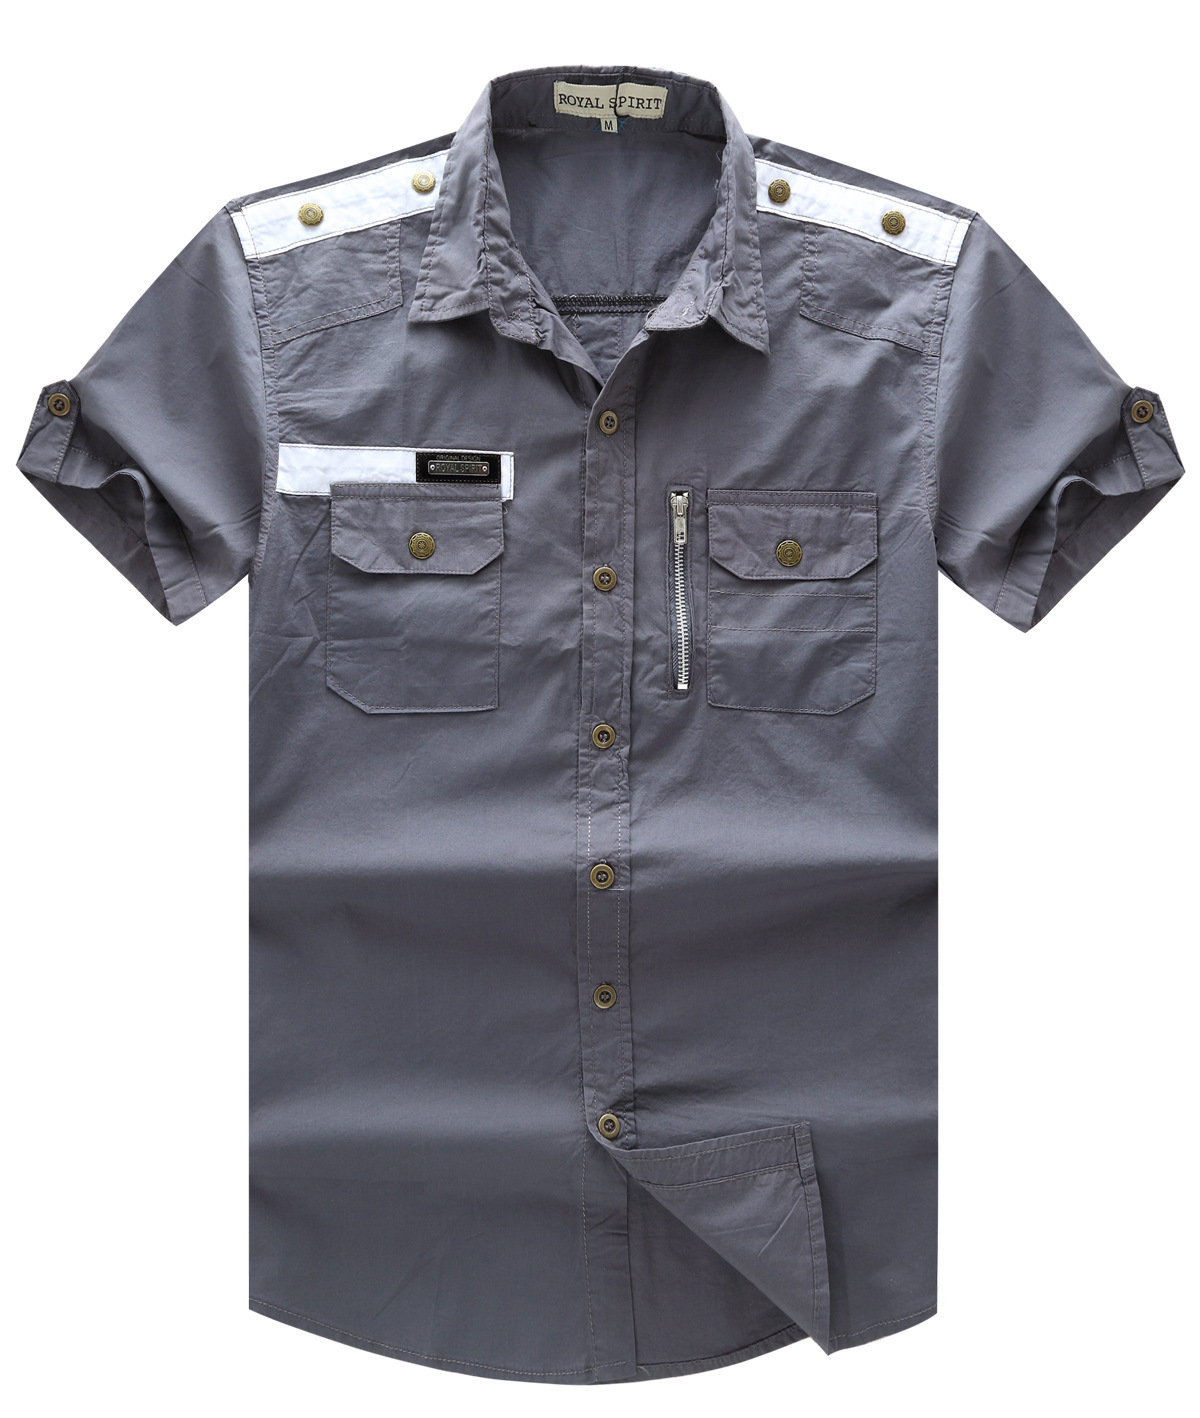 Mens dress shirt short sleeve shirts man casual mens for Black brown mens shirts